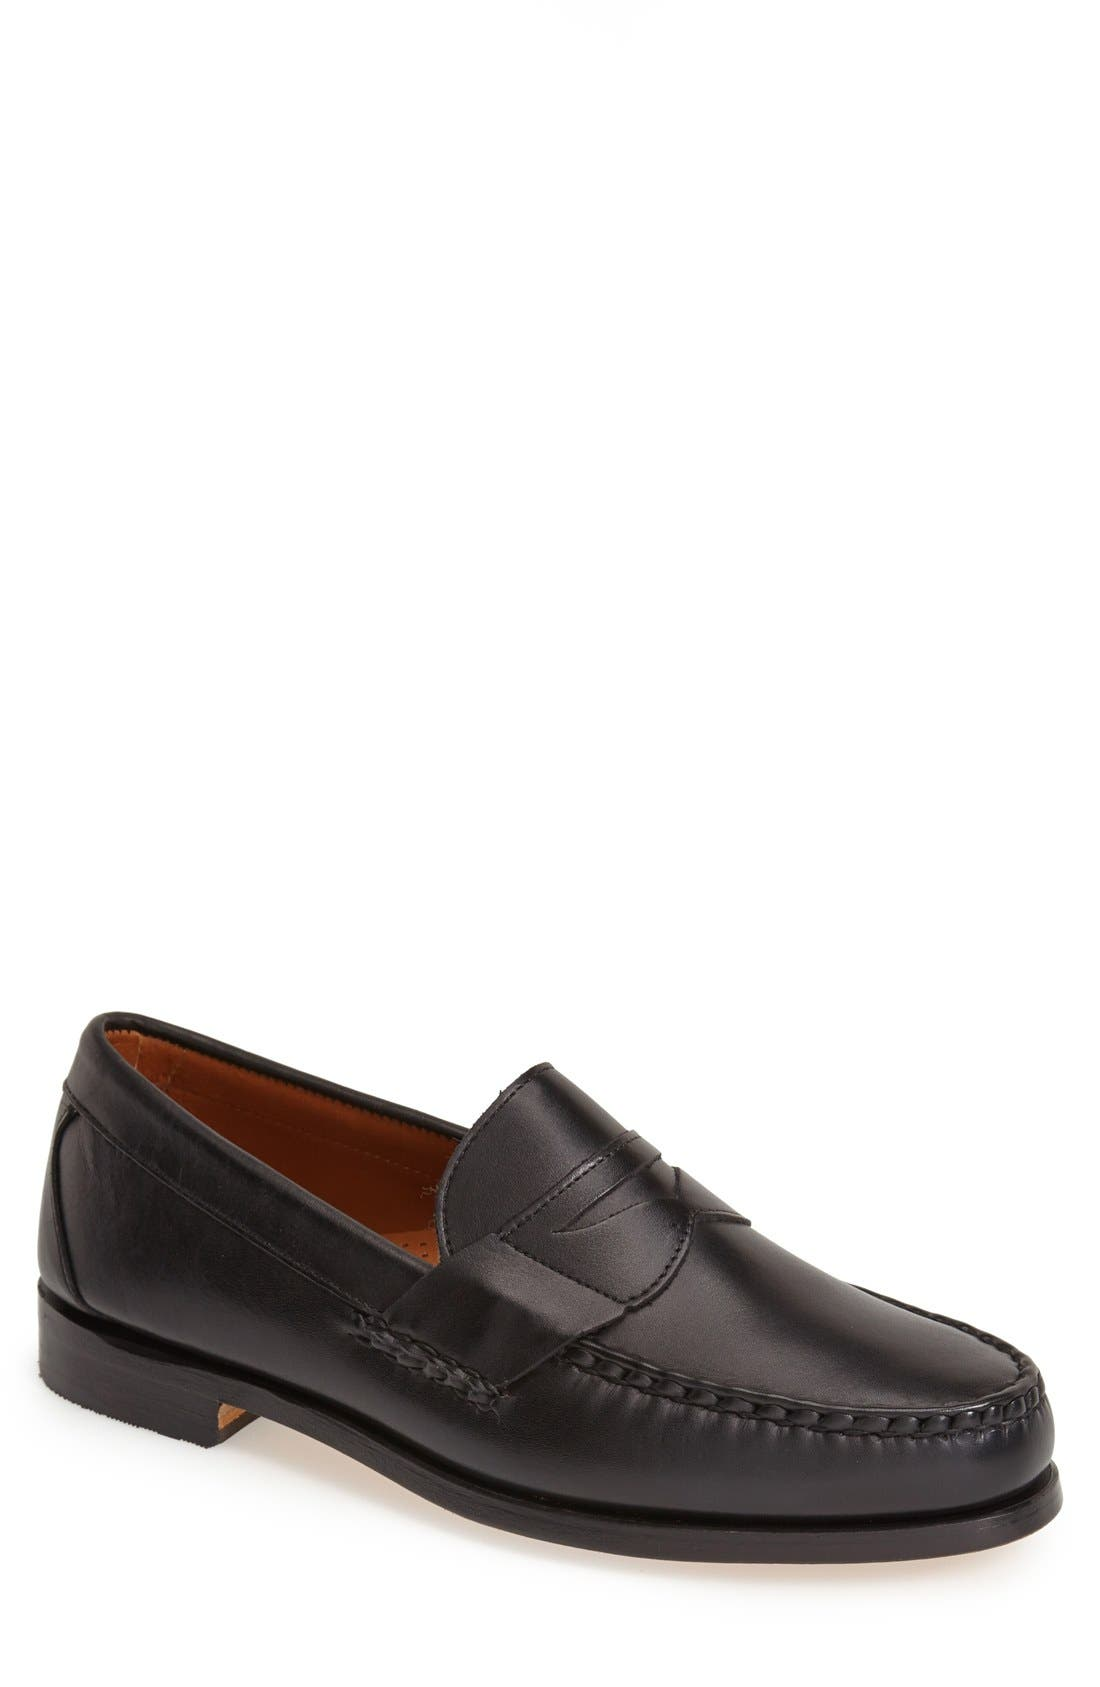 ALLEN EDMONDS 'Cavanaugh' Penny Loafer